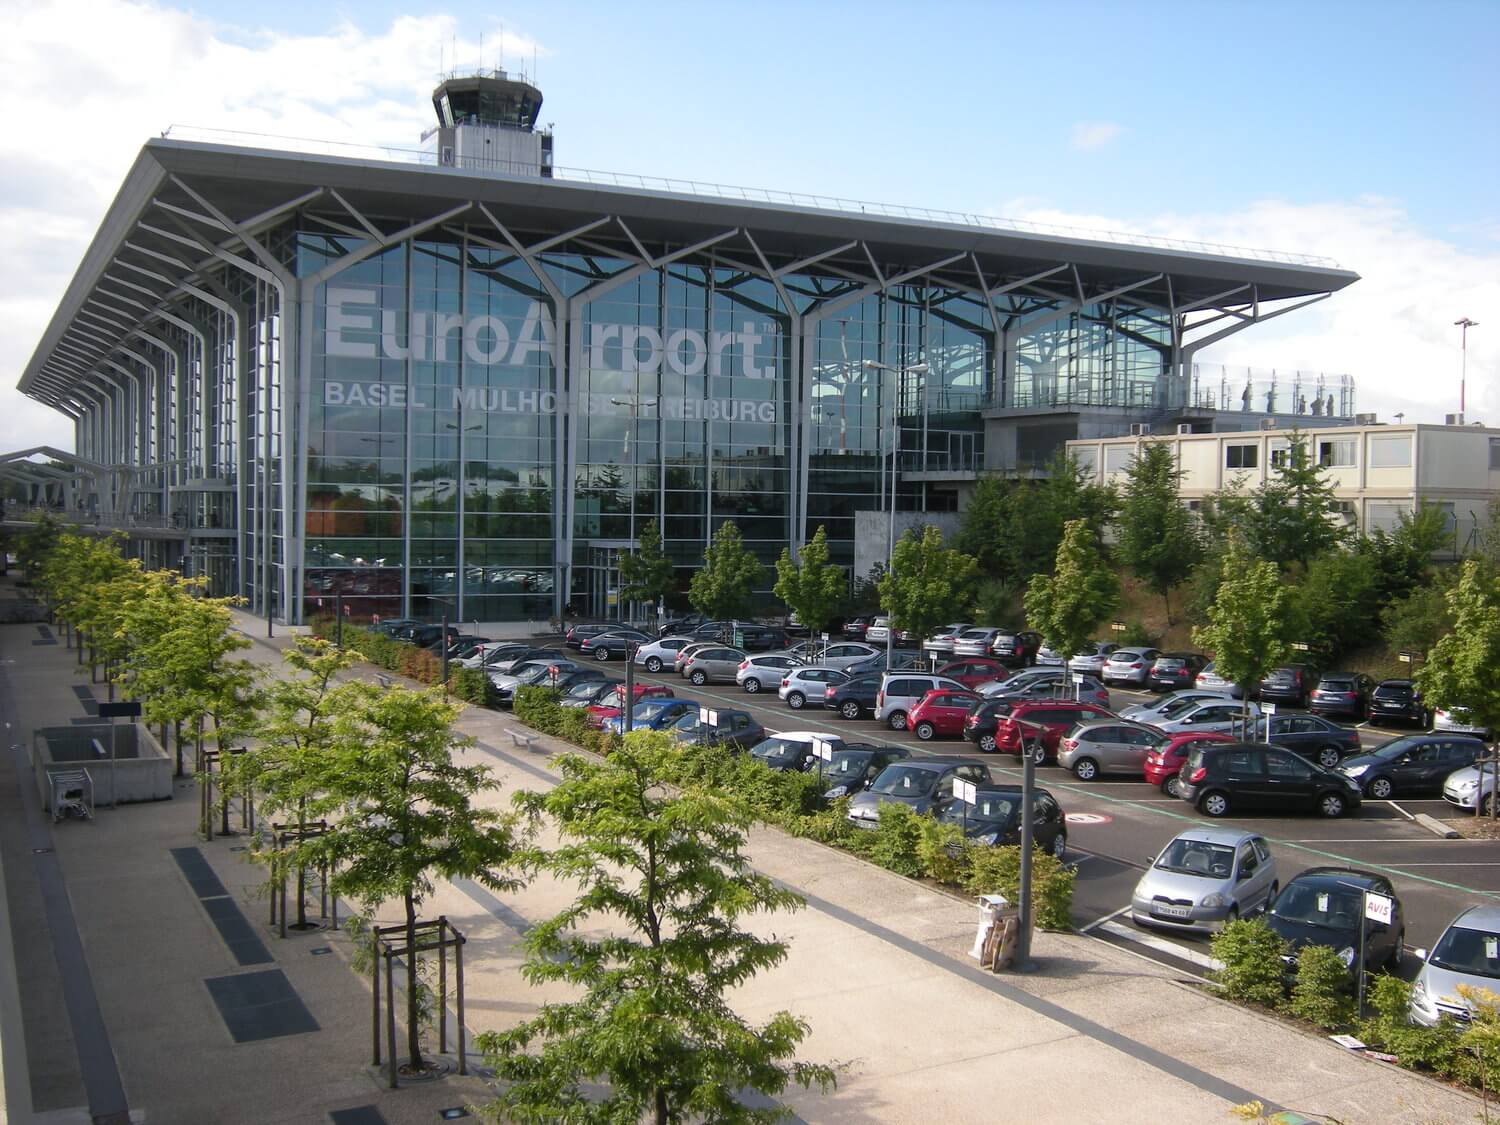 Aéroport de Bâle-Mulhouse-Fribourg - photo d'illustration